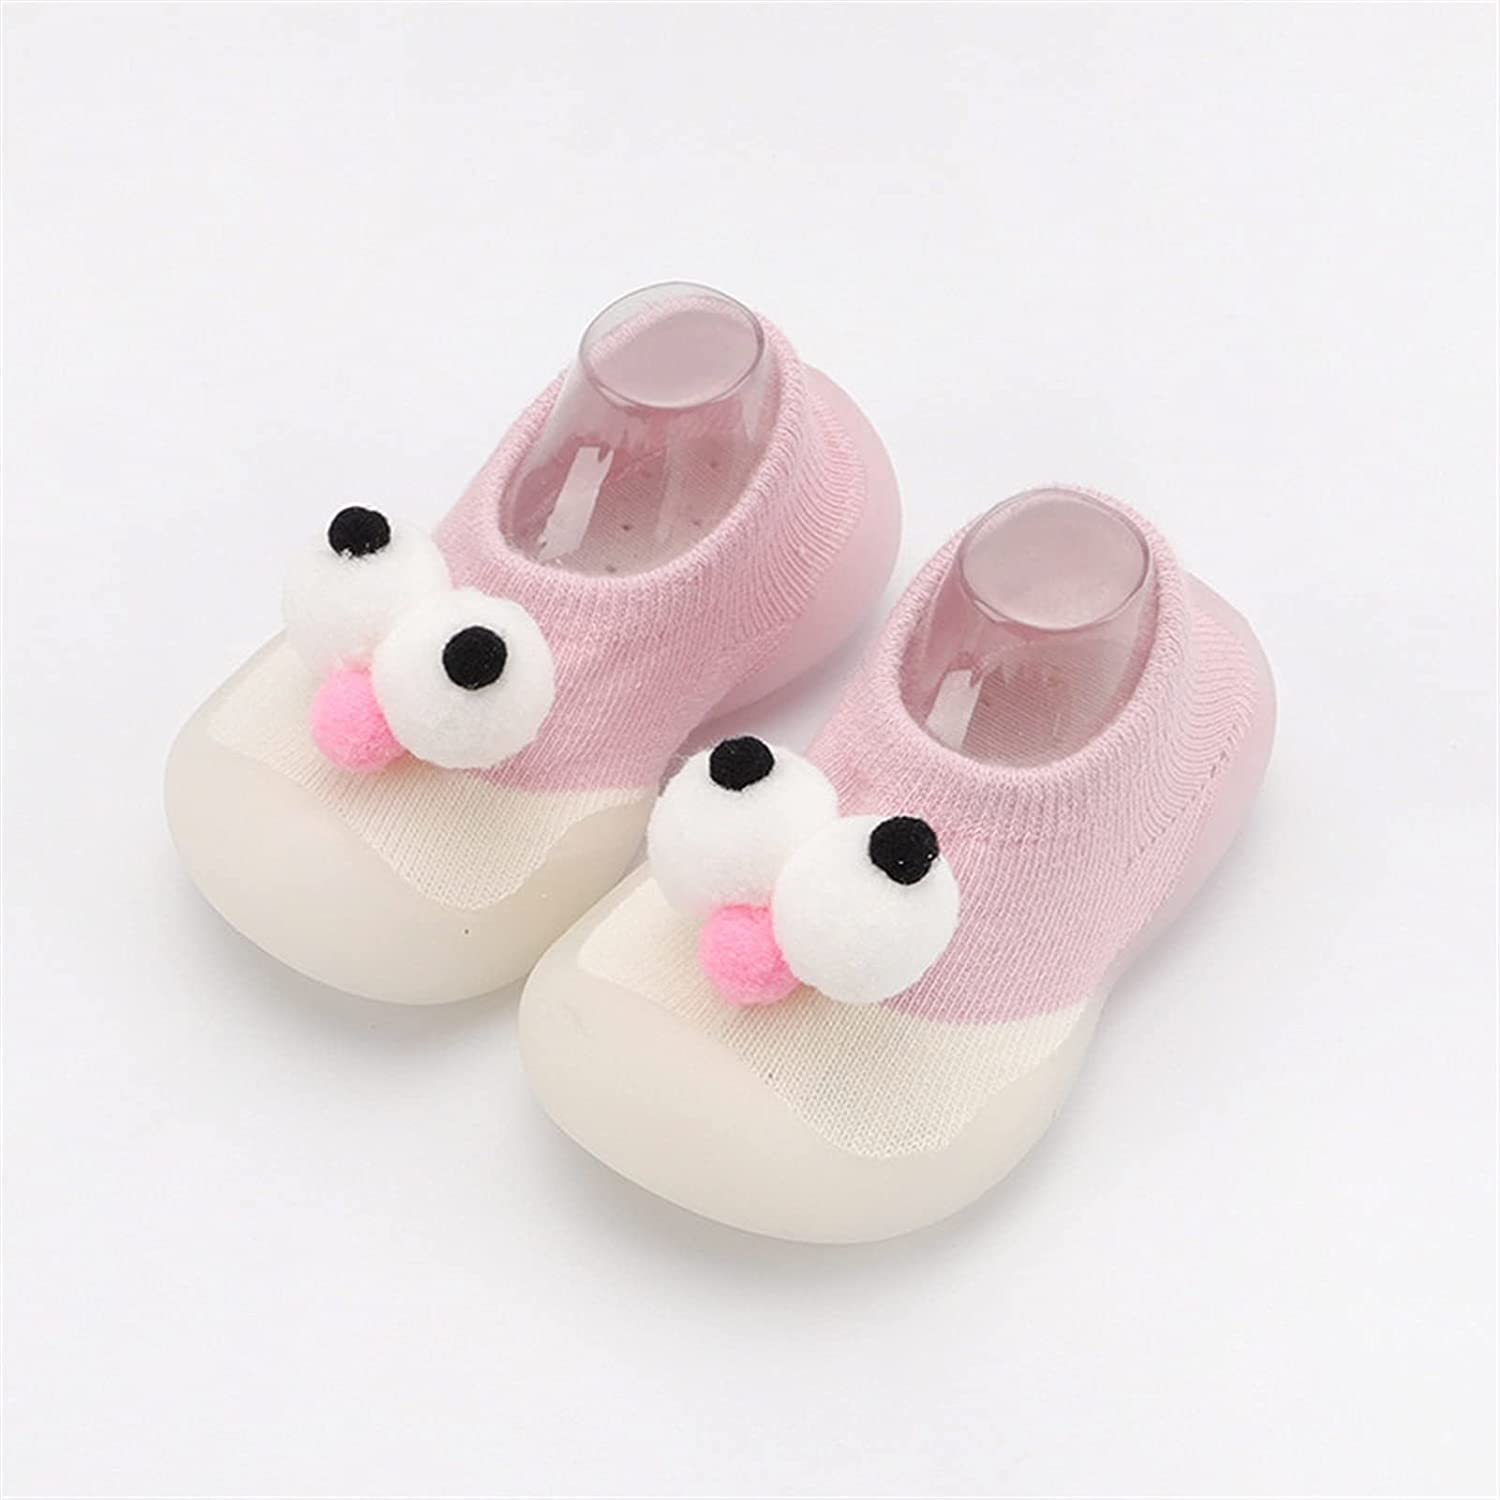 Baby Boys Girls Sock Shoes Autumn Soft Weekly update Socks Floor Non-Slip All items in the store Kids